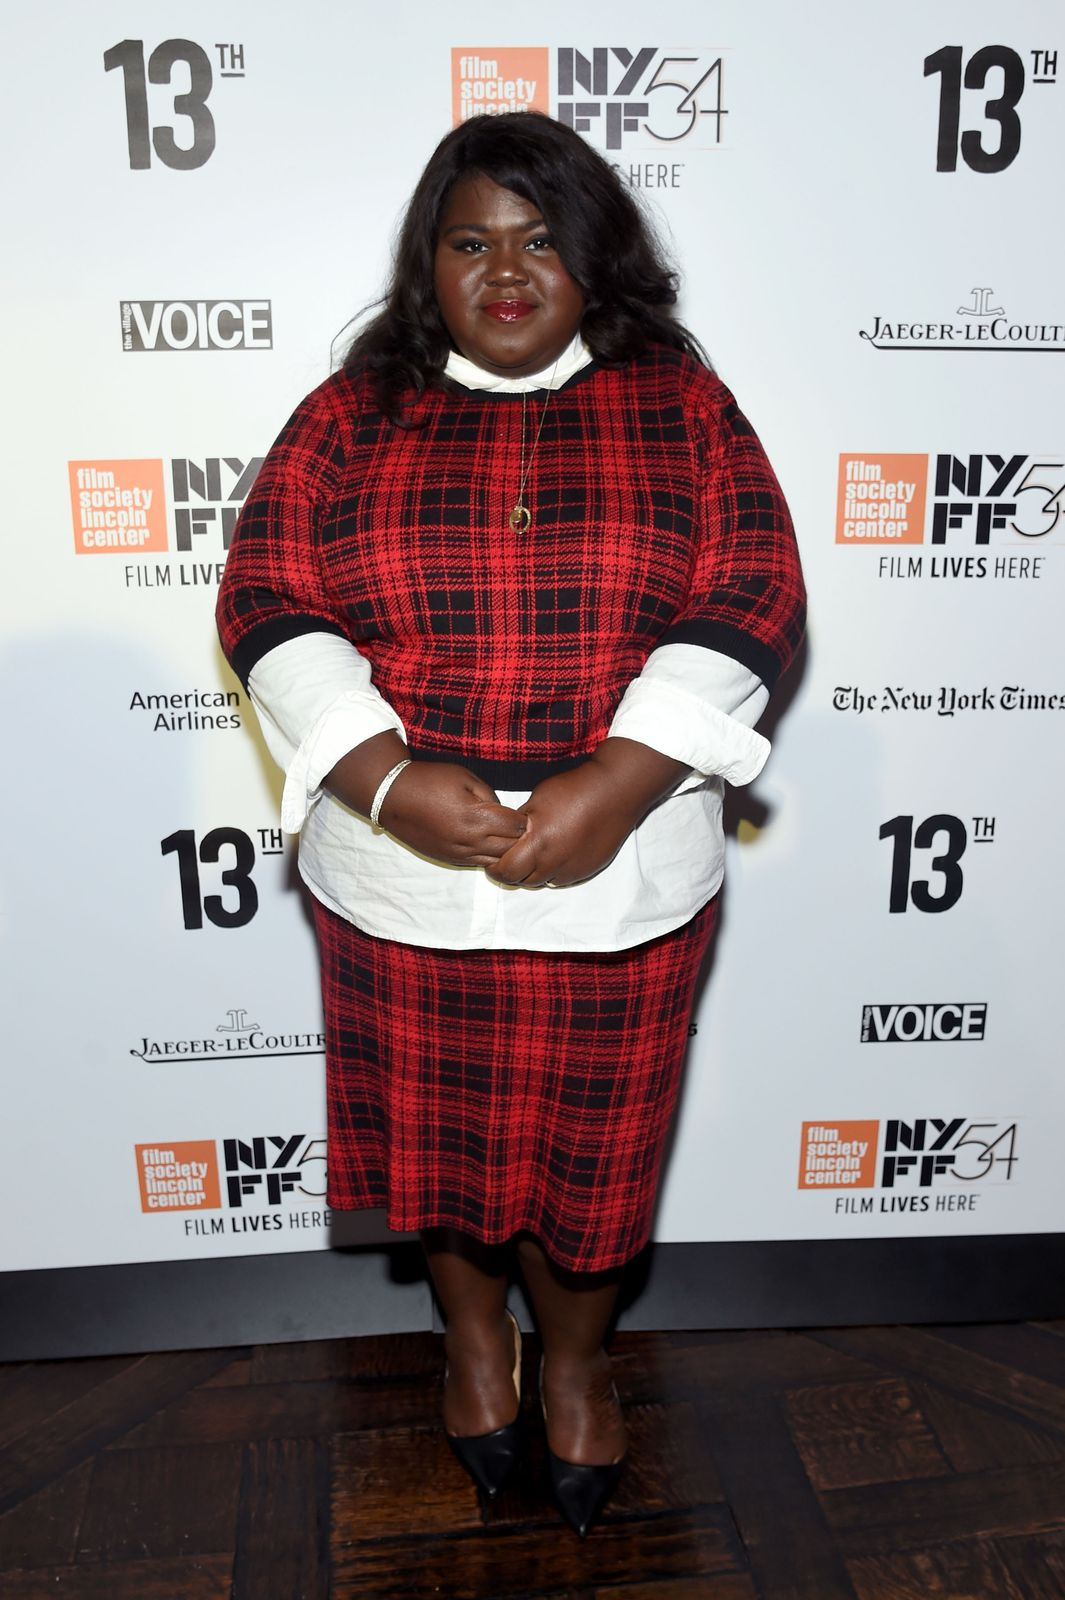 Gabourey Sidibe at the New York Film Festival opening night party  in New York City on September 30, 2016. | Photo: Getty Images